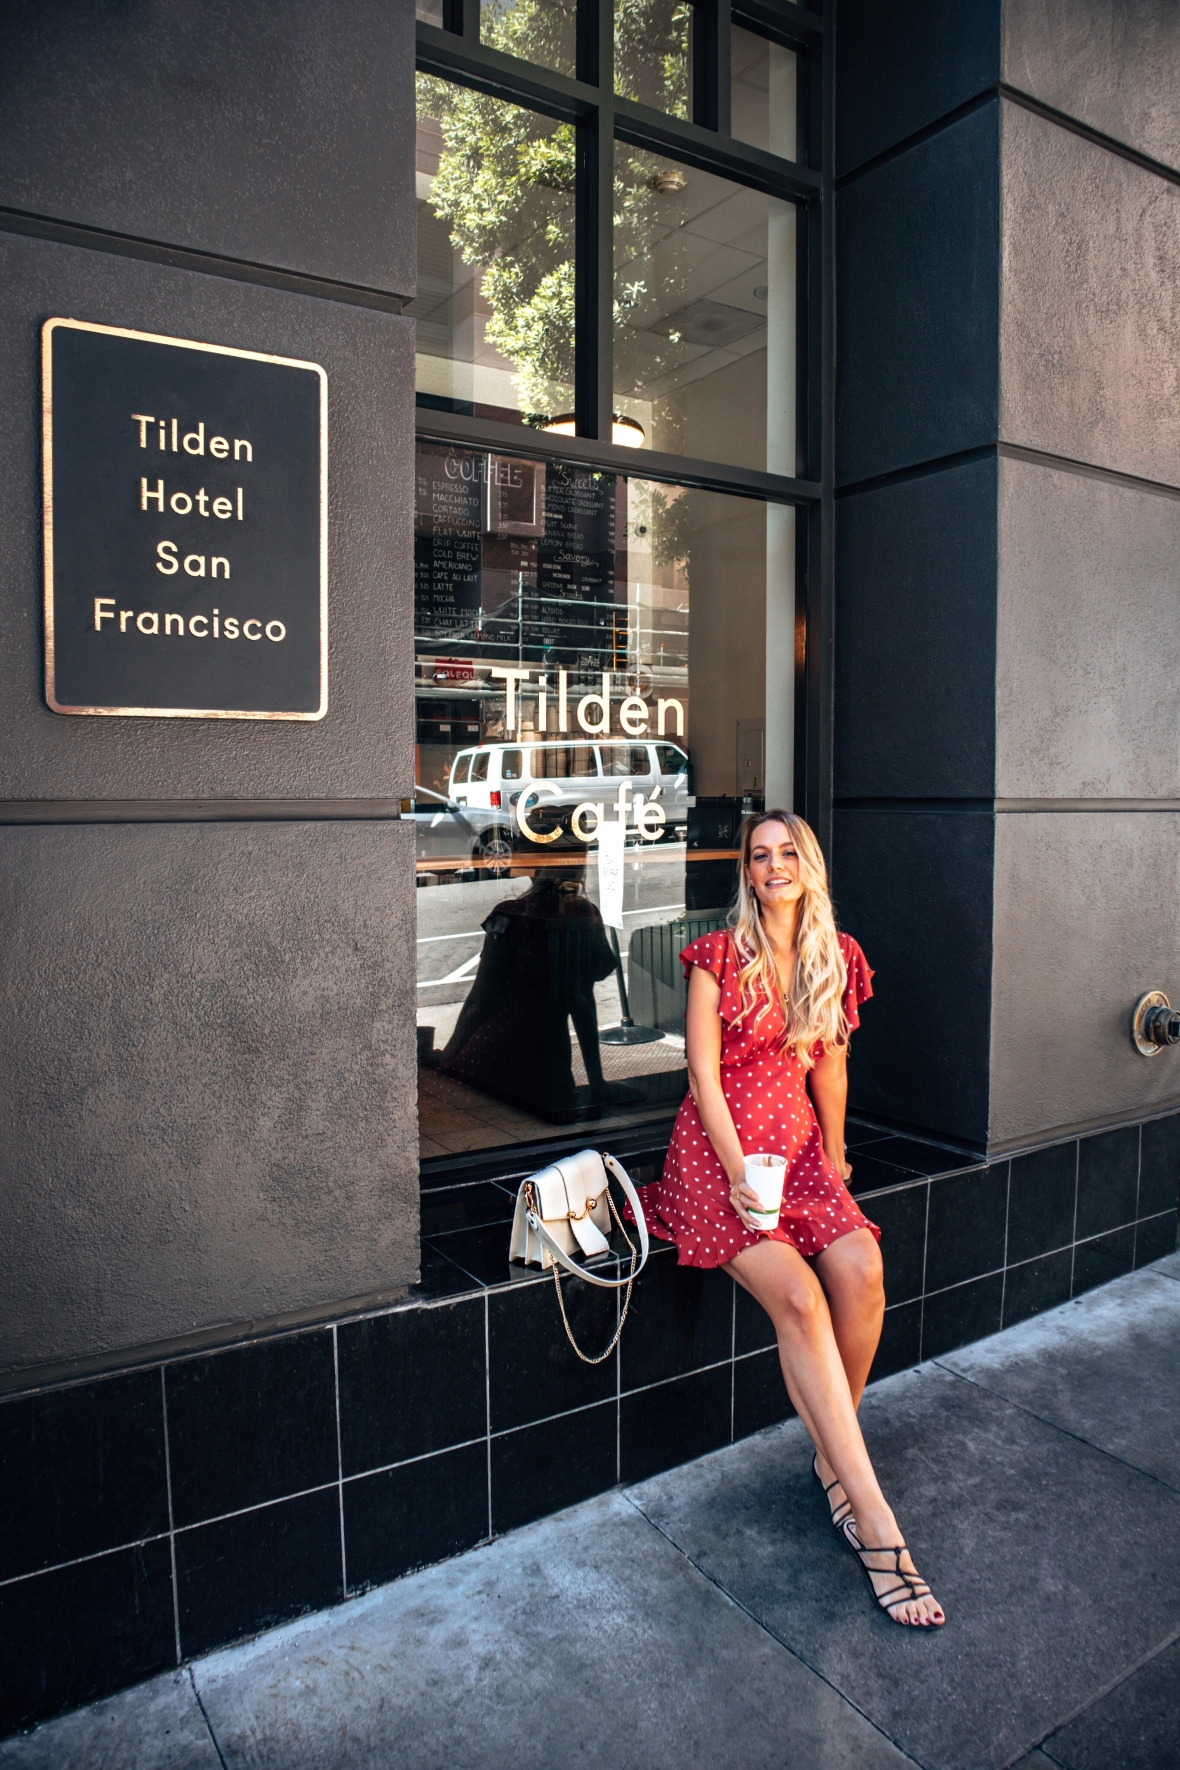 Review Tilden hotel San Francisco Merel van Poorten